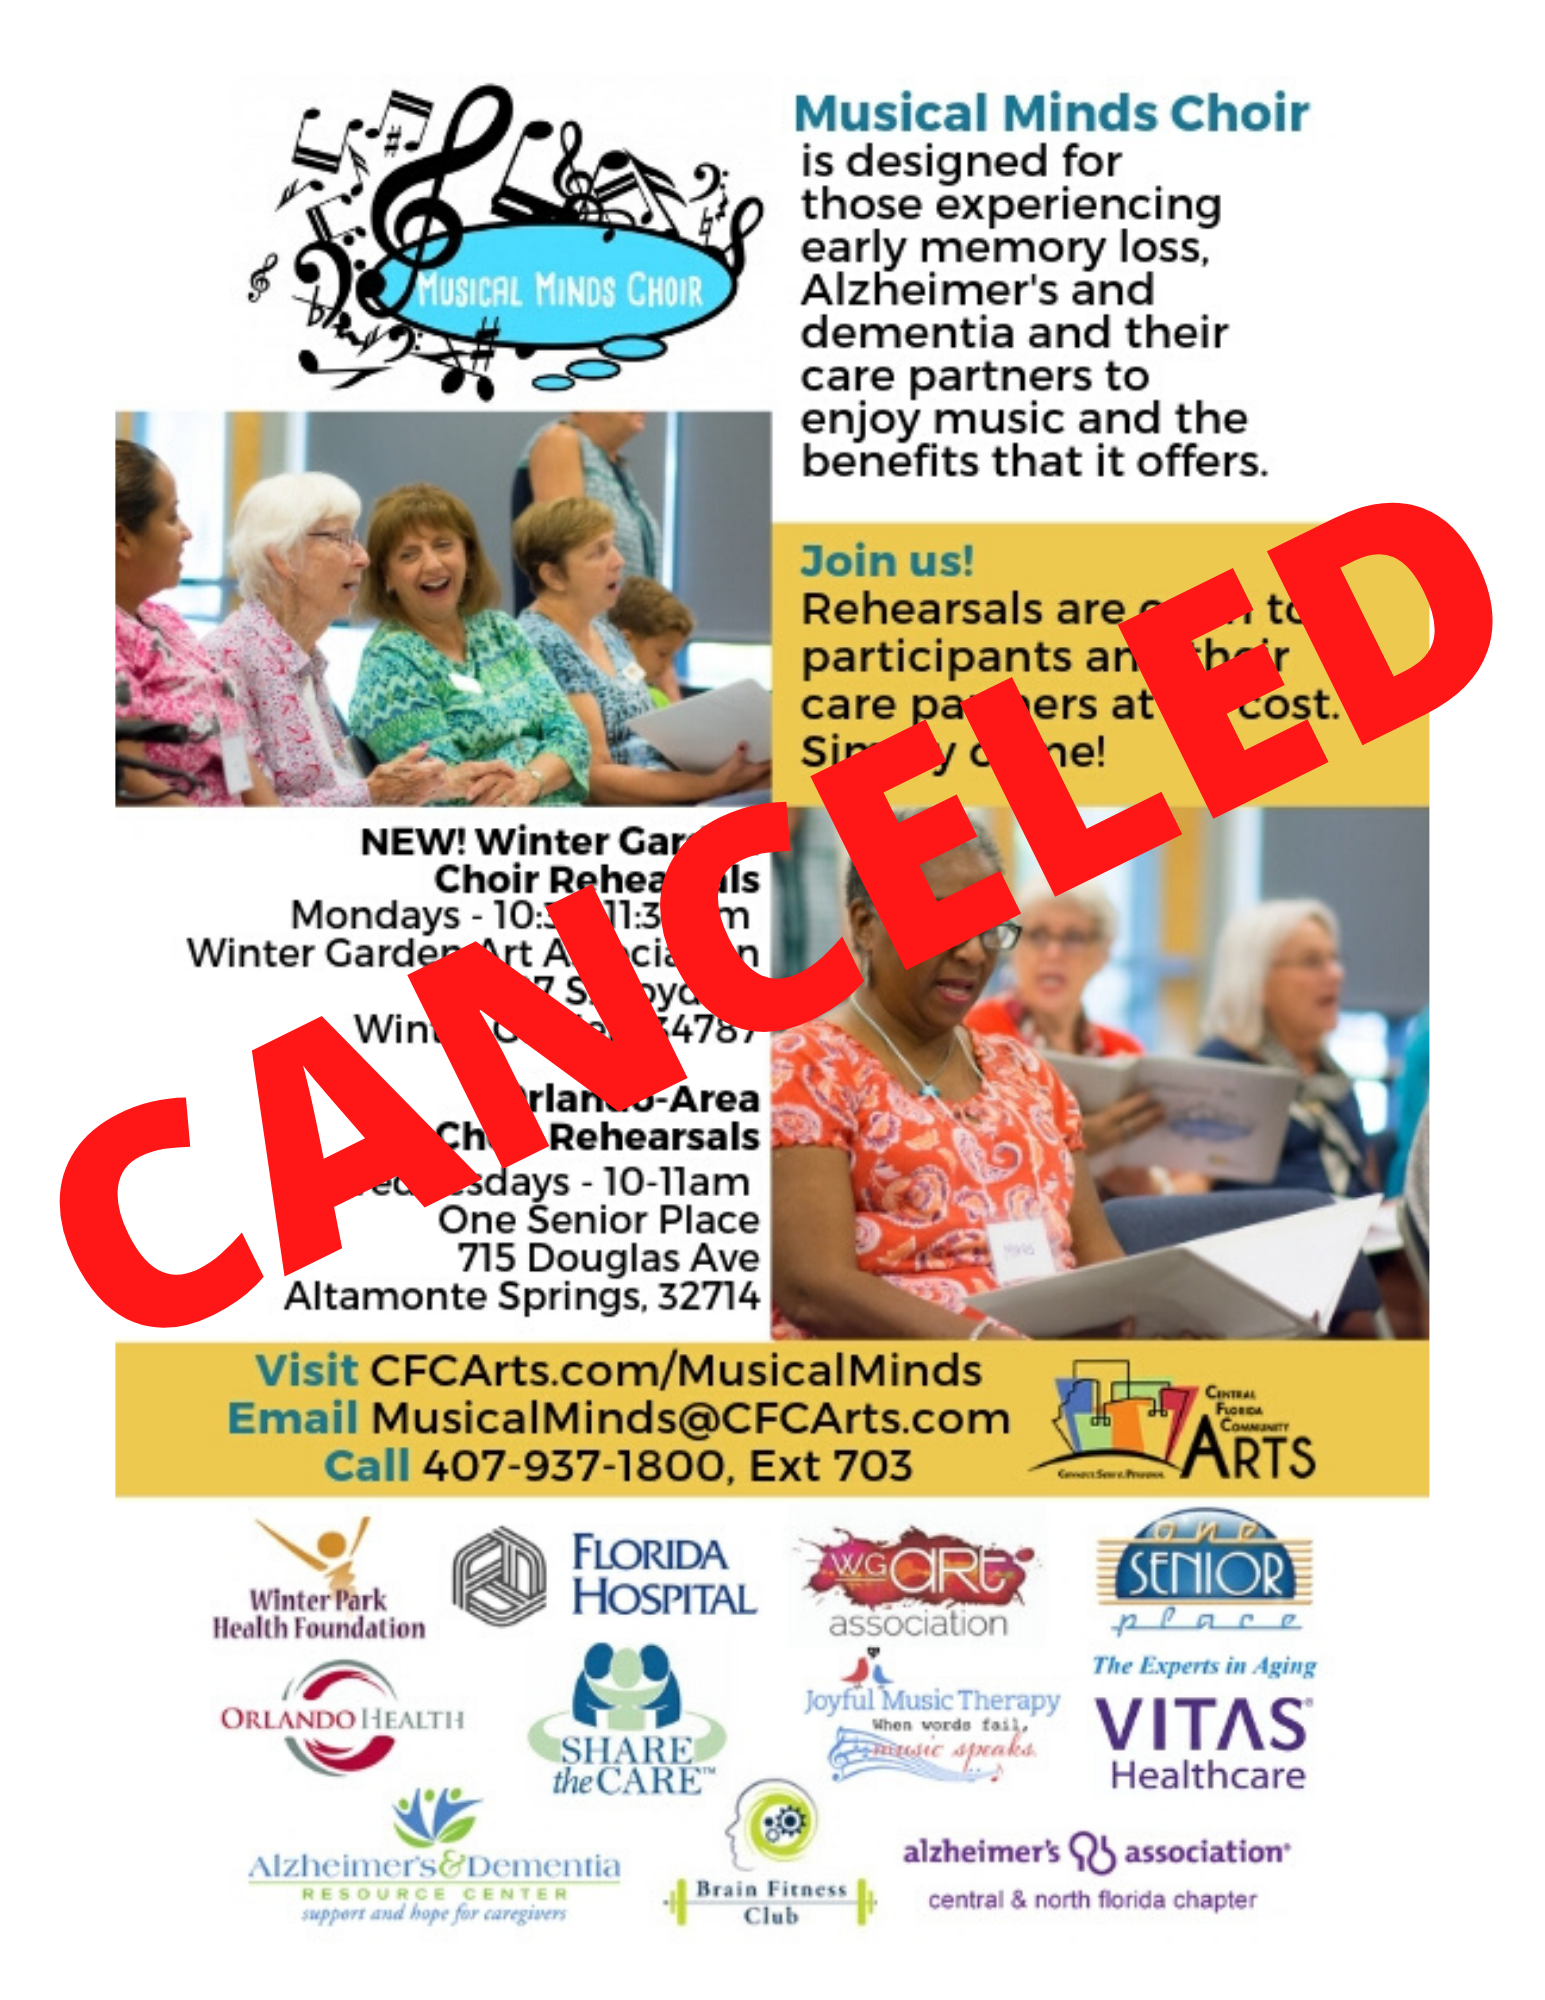 CANCELED: Musical Minds Choir